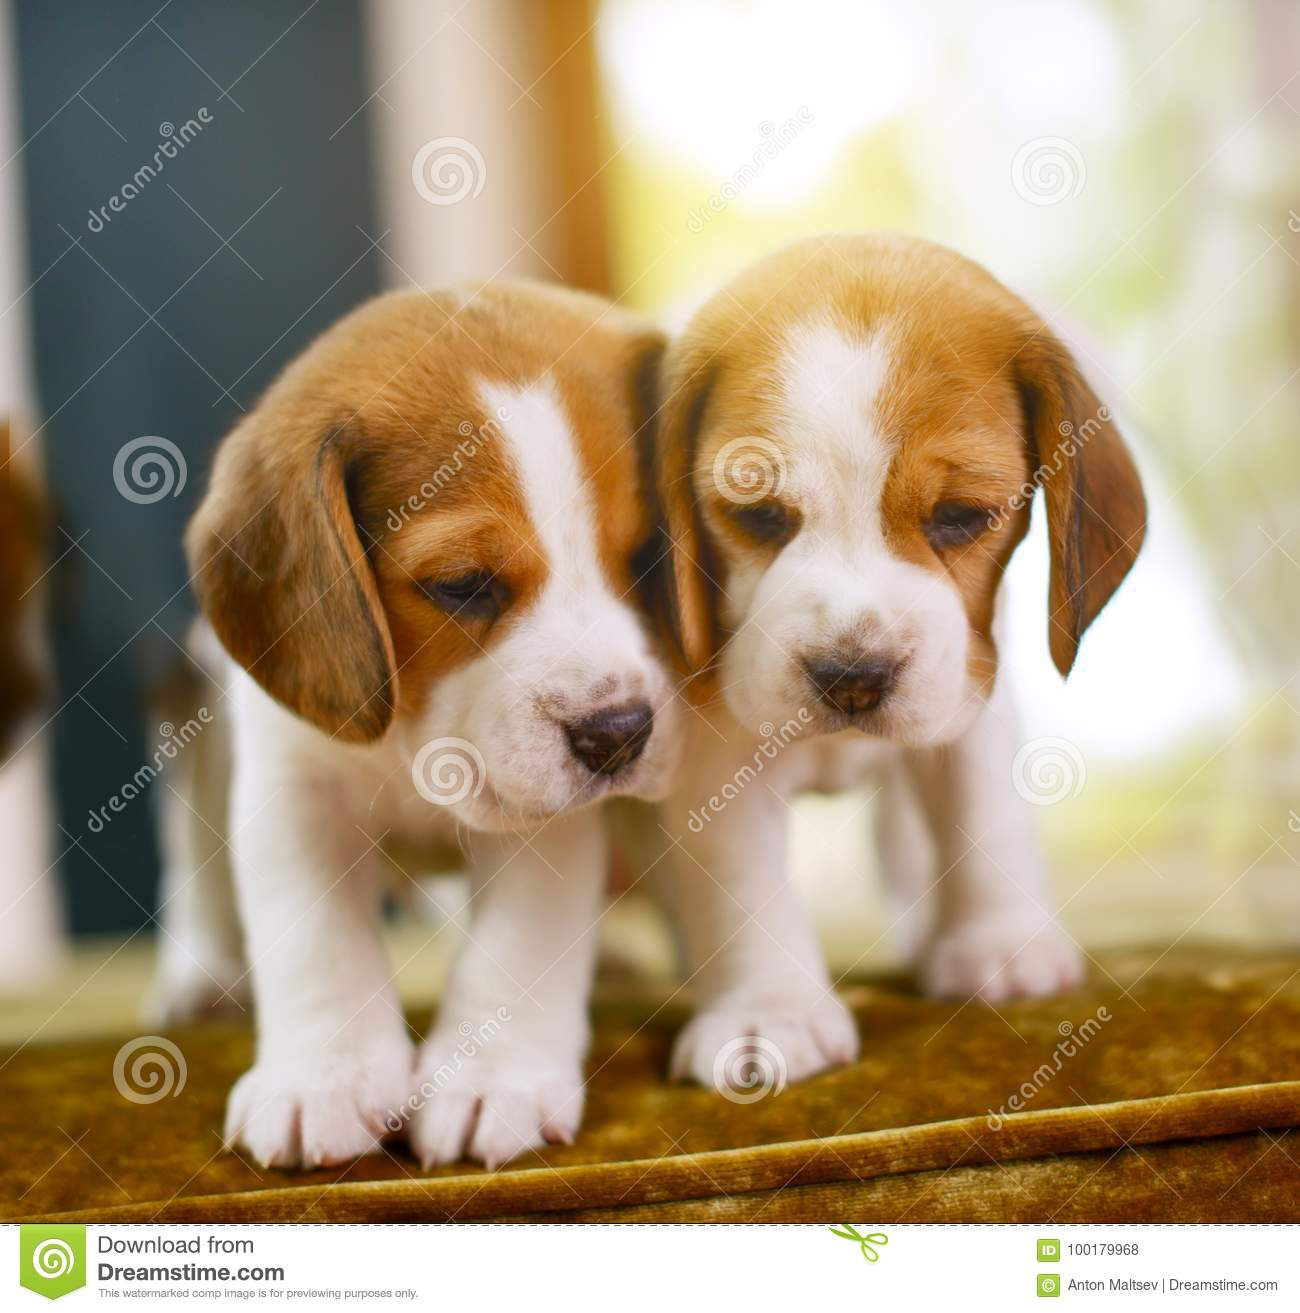 Beagle Puppies Stock Photo Image Of Baby Dogs Cute 100179968